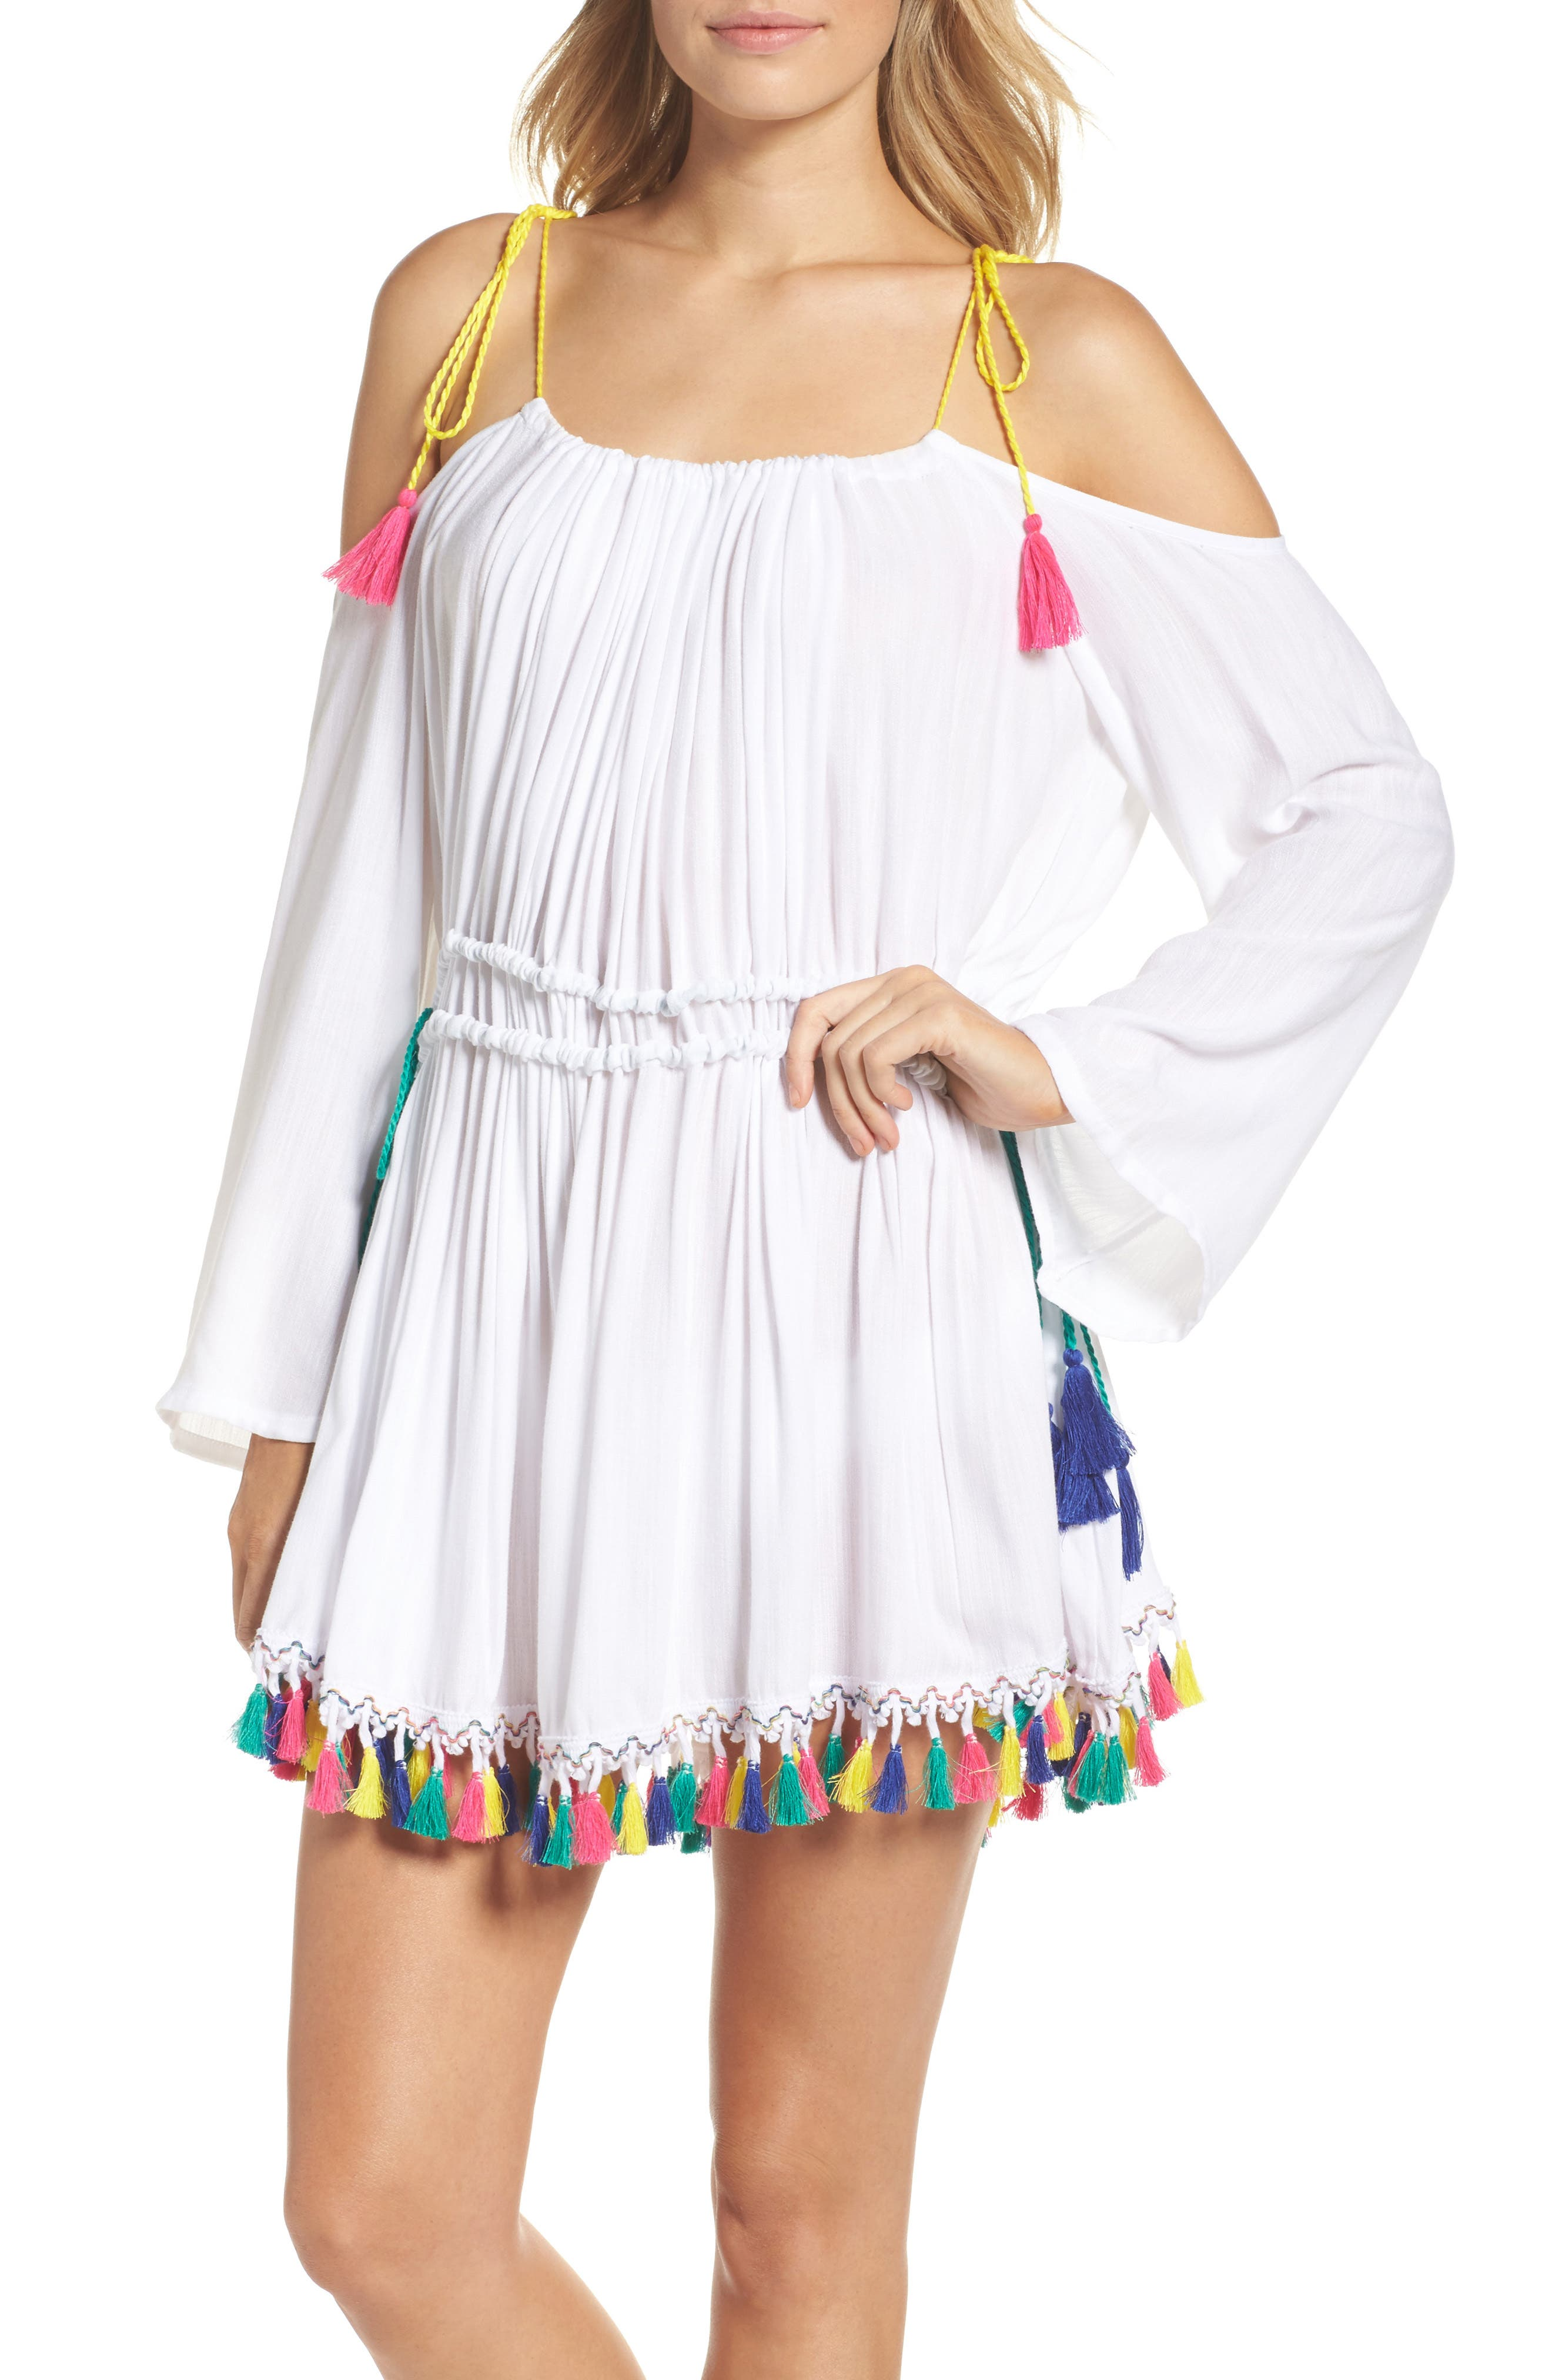 Fiesta Cover-Up Dress,                         Main,                         color, White